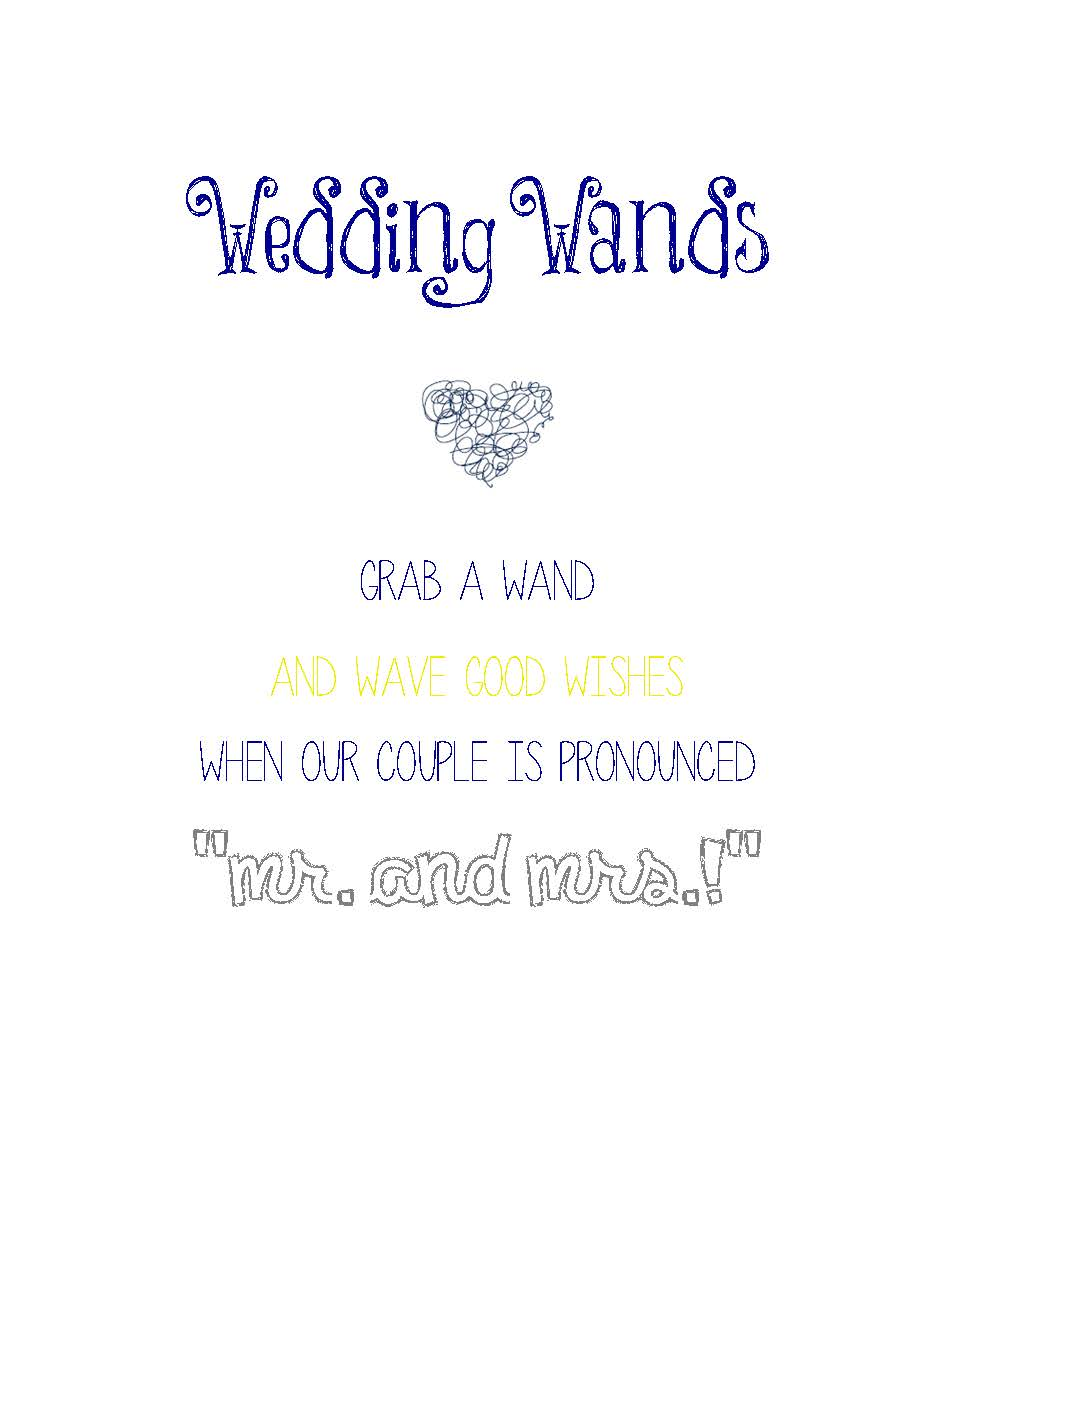 wedding-wands-9-37-28-pm